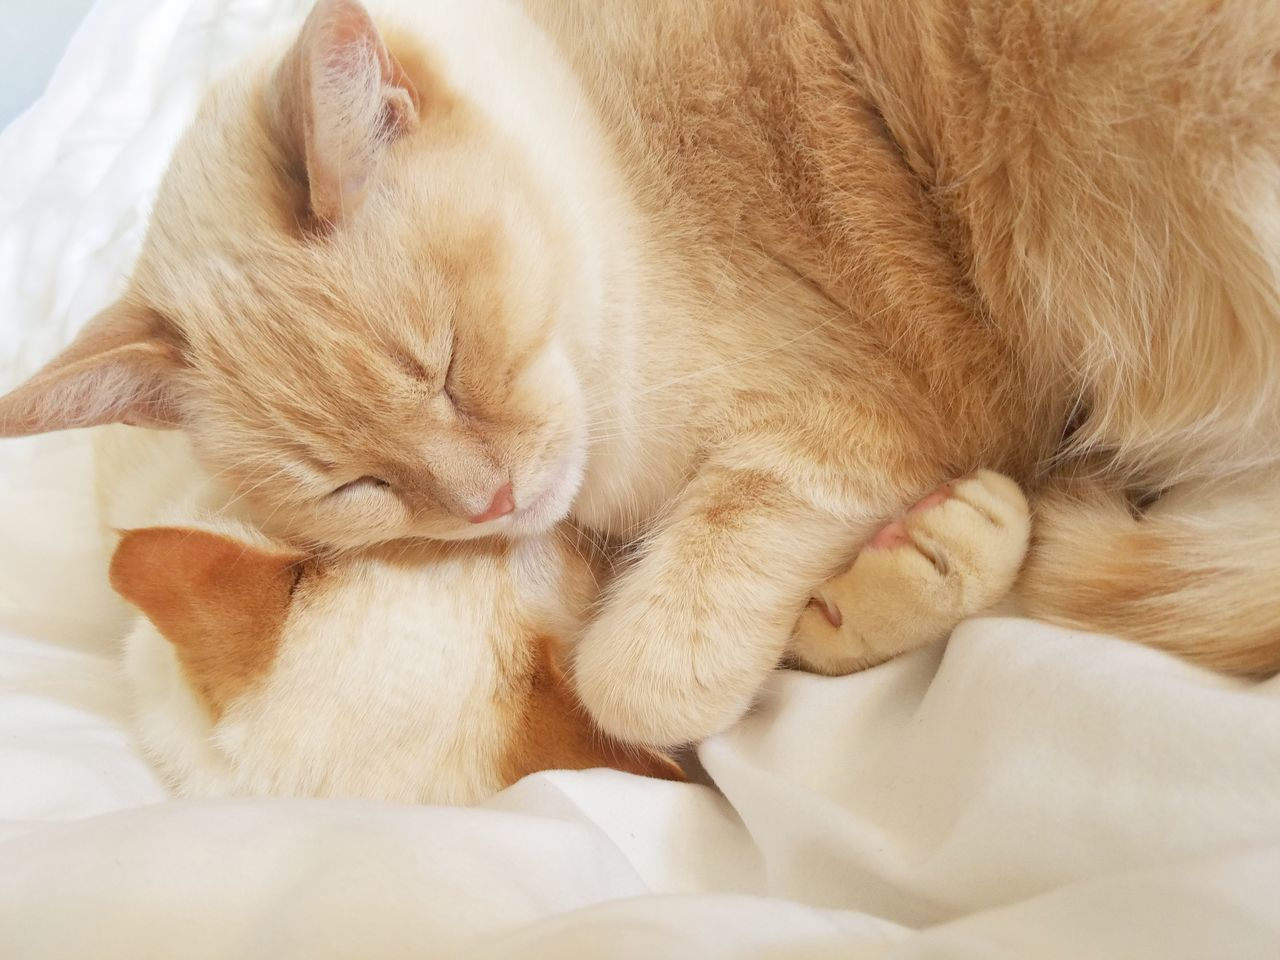 Photo of cat(s) in everyday situations. Animal Themes Bed Cat Cats Close-up Cuddle Day Domestic Animals Domestic Cat Eyes Closed  Feline Indoors  Lying Down Mammal No People One Animal Pets Relaxation Sleeping